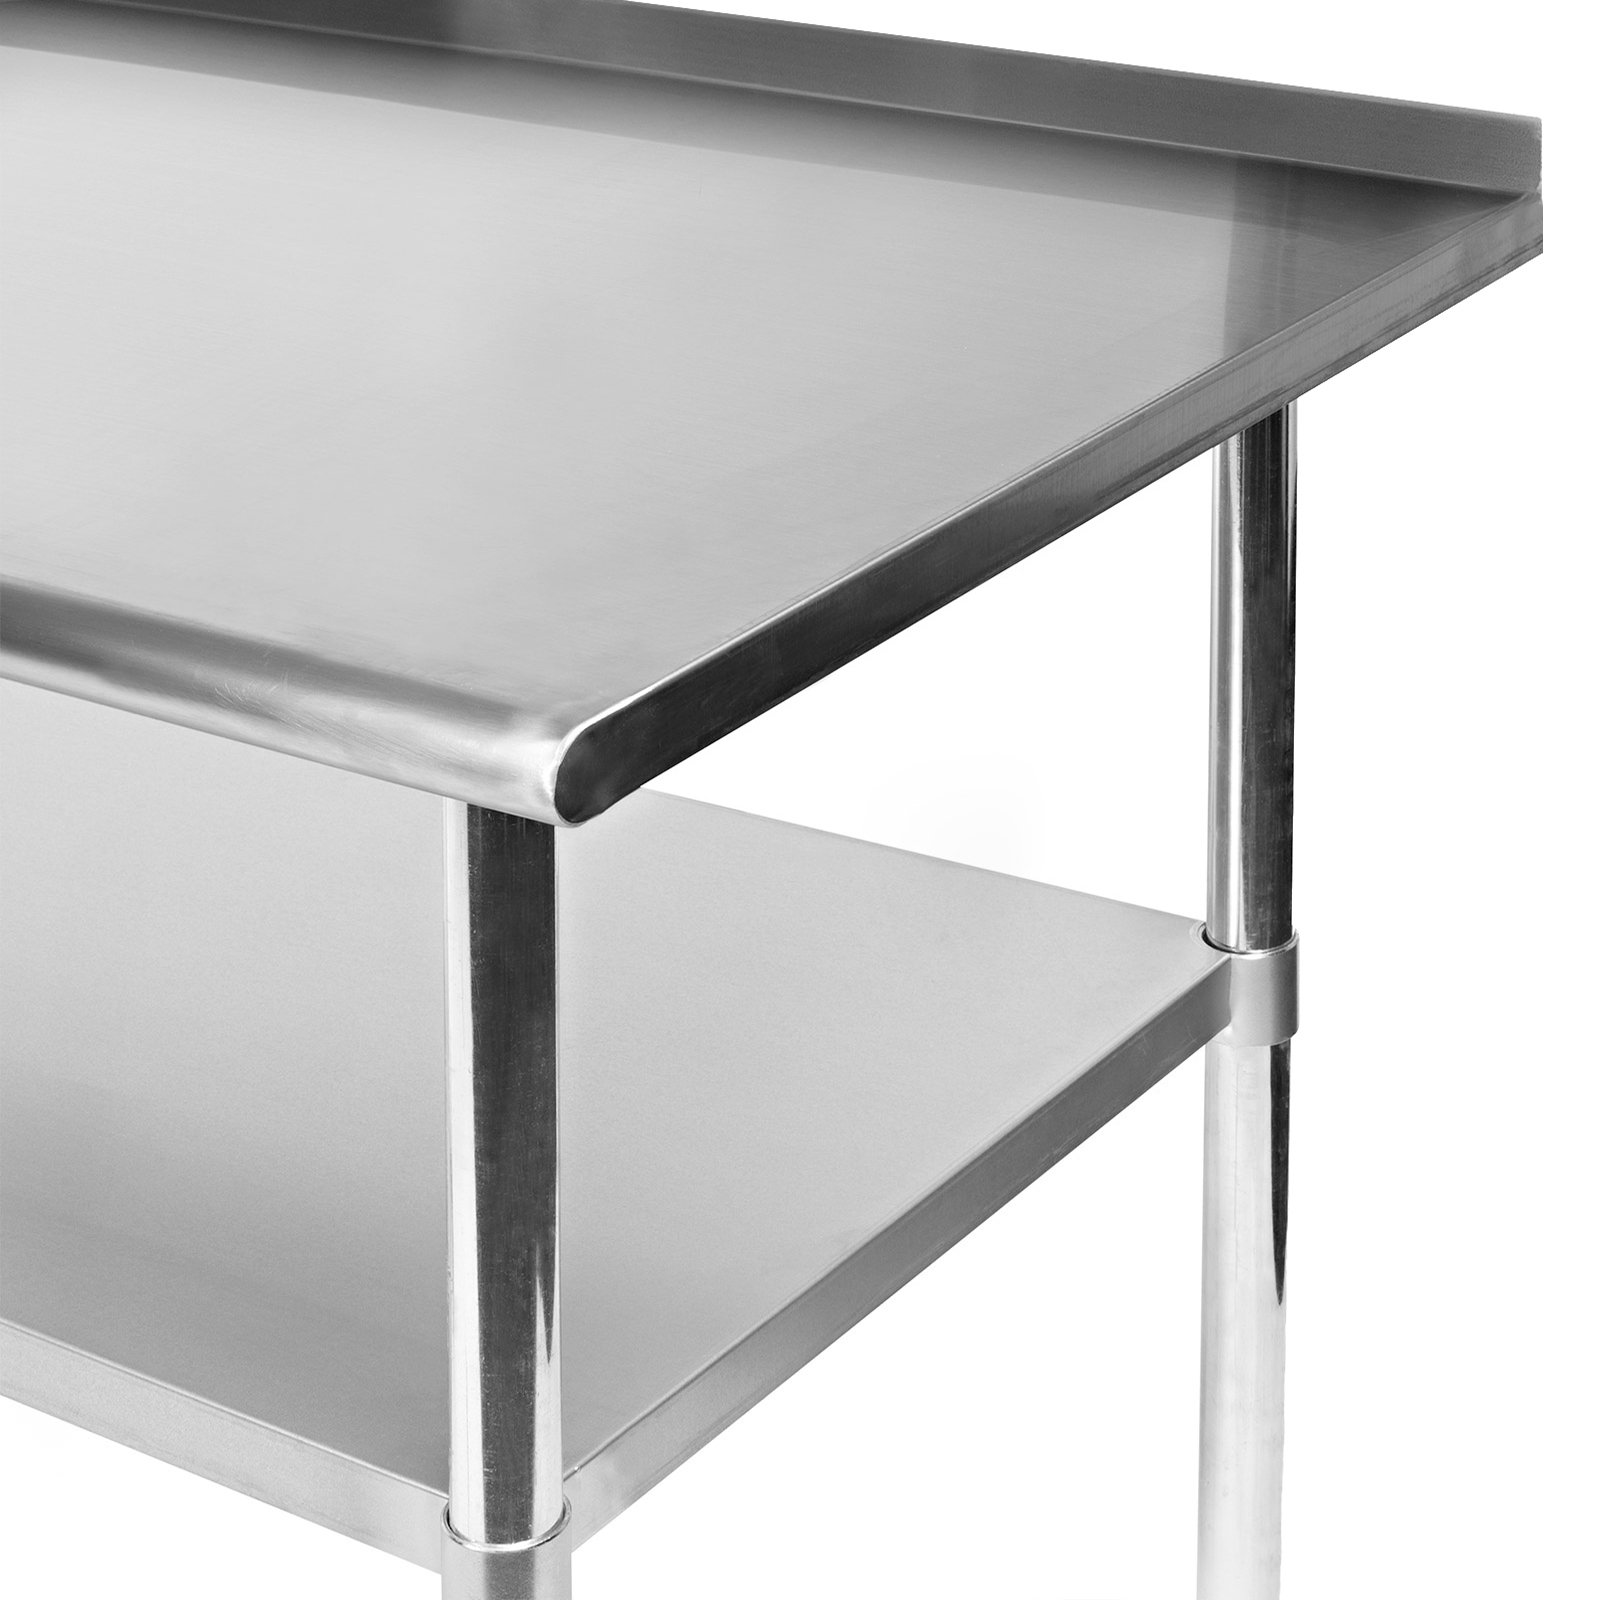 Gridmann Stainless Steel Commercial Kitchen Prep & Work Table w/ Backsplash - 30'' x 24'' by Gridmann (Image #3)